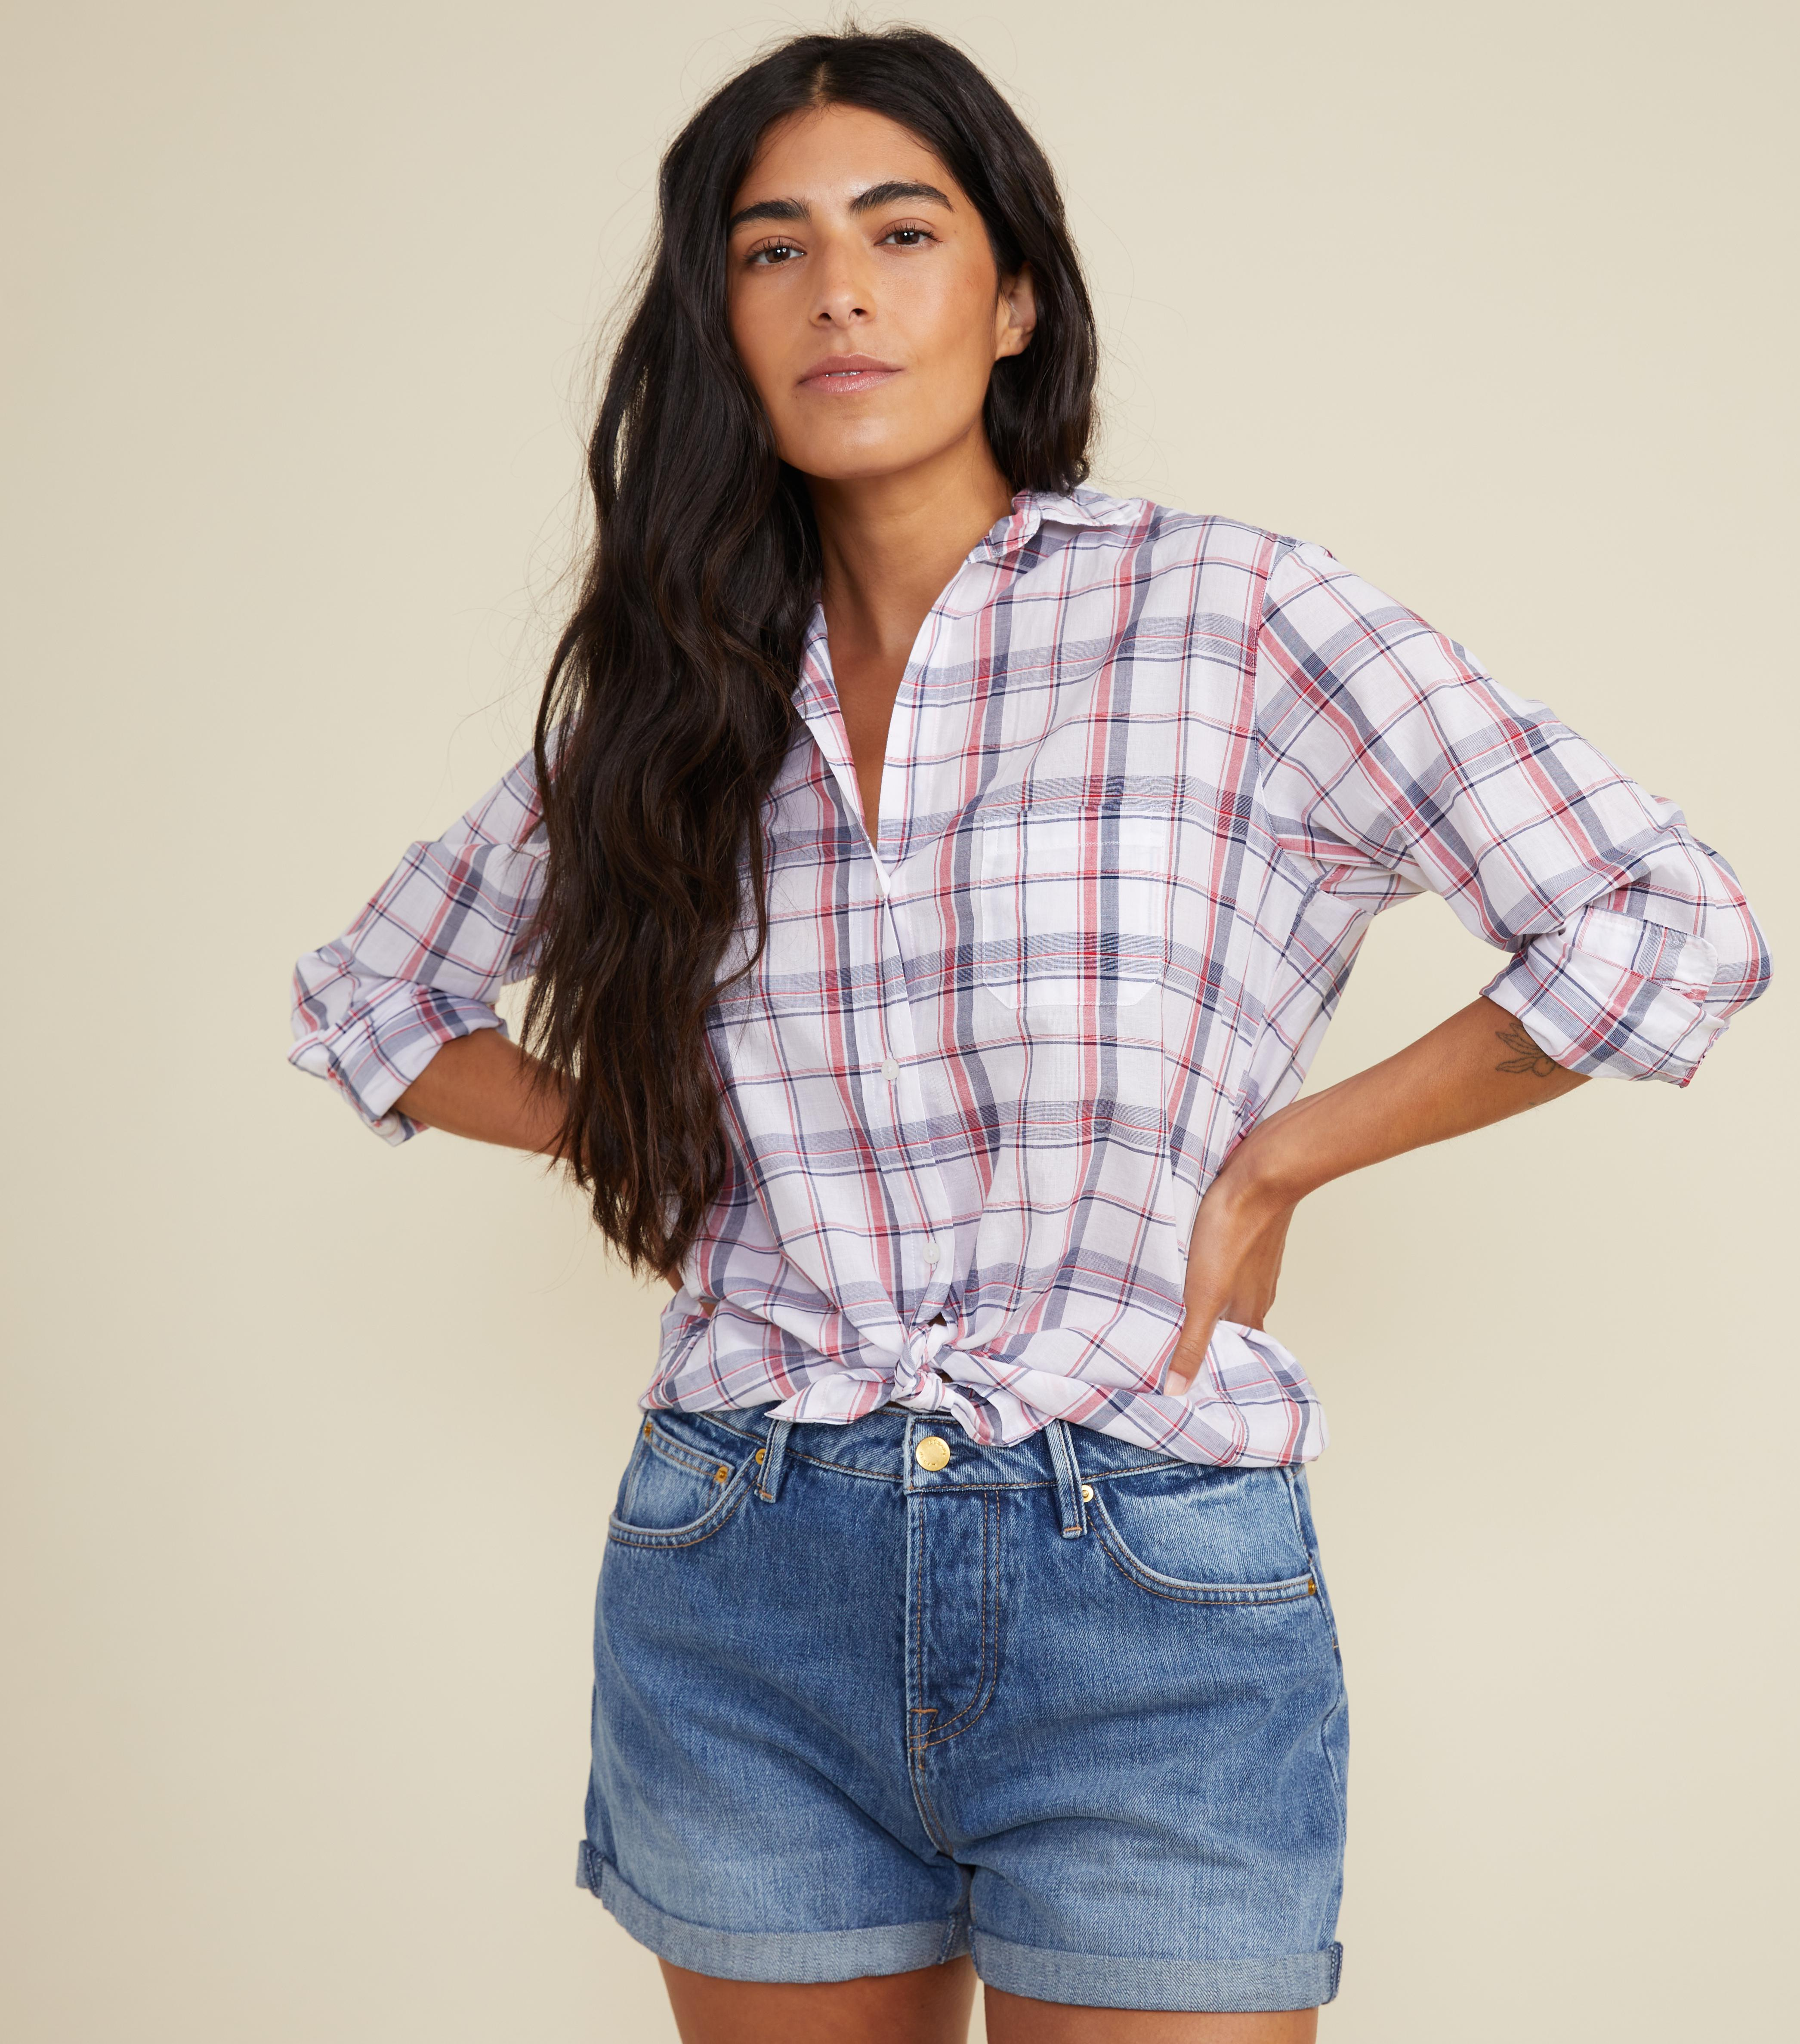 The Hero White with Navy and Red Plaid, Tissue Cotton Sale